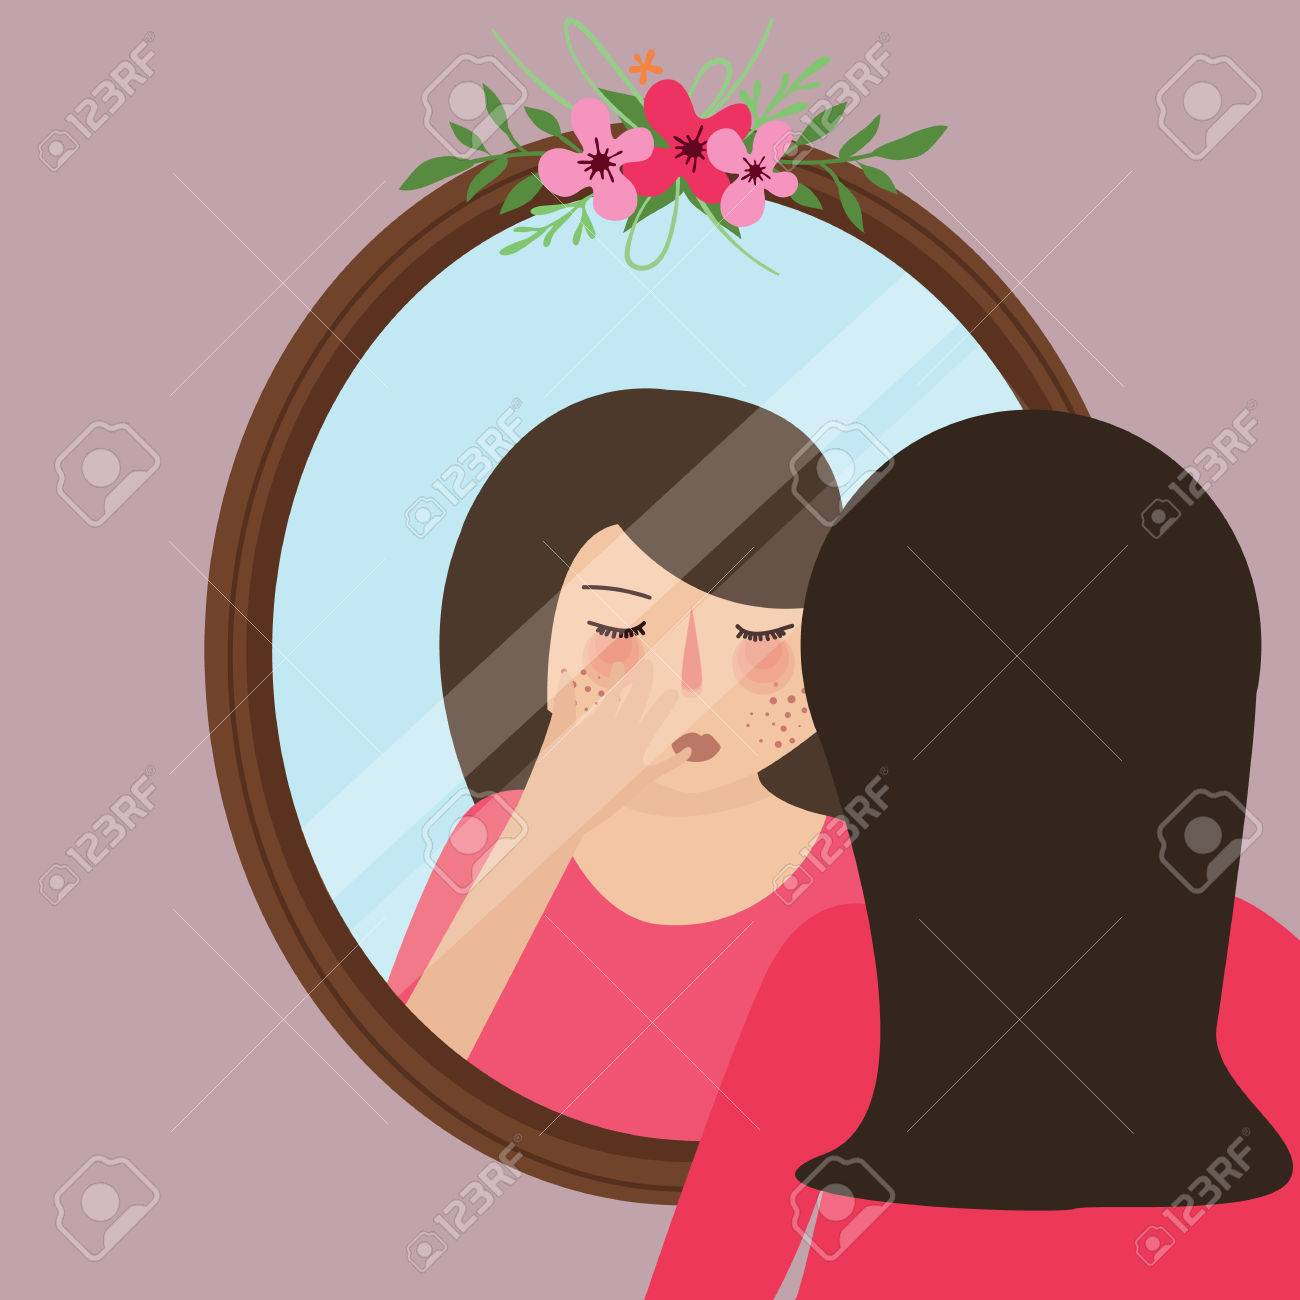 girls with acne pimple looking into mirror skin face problem vector - 58711752